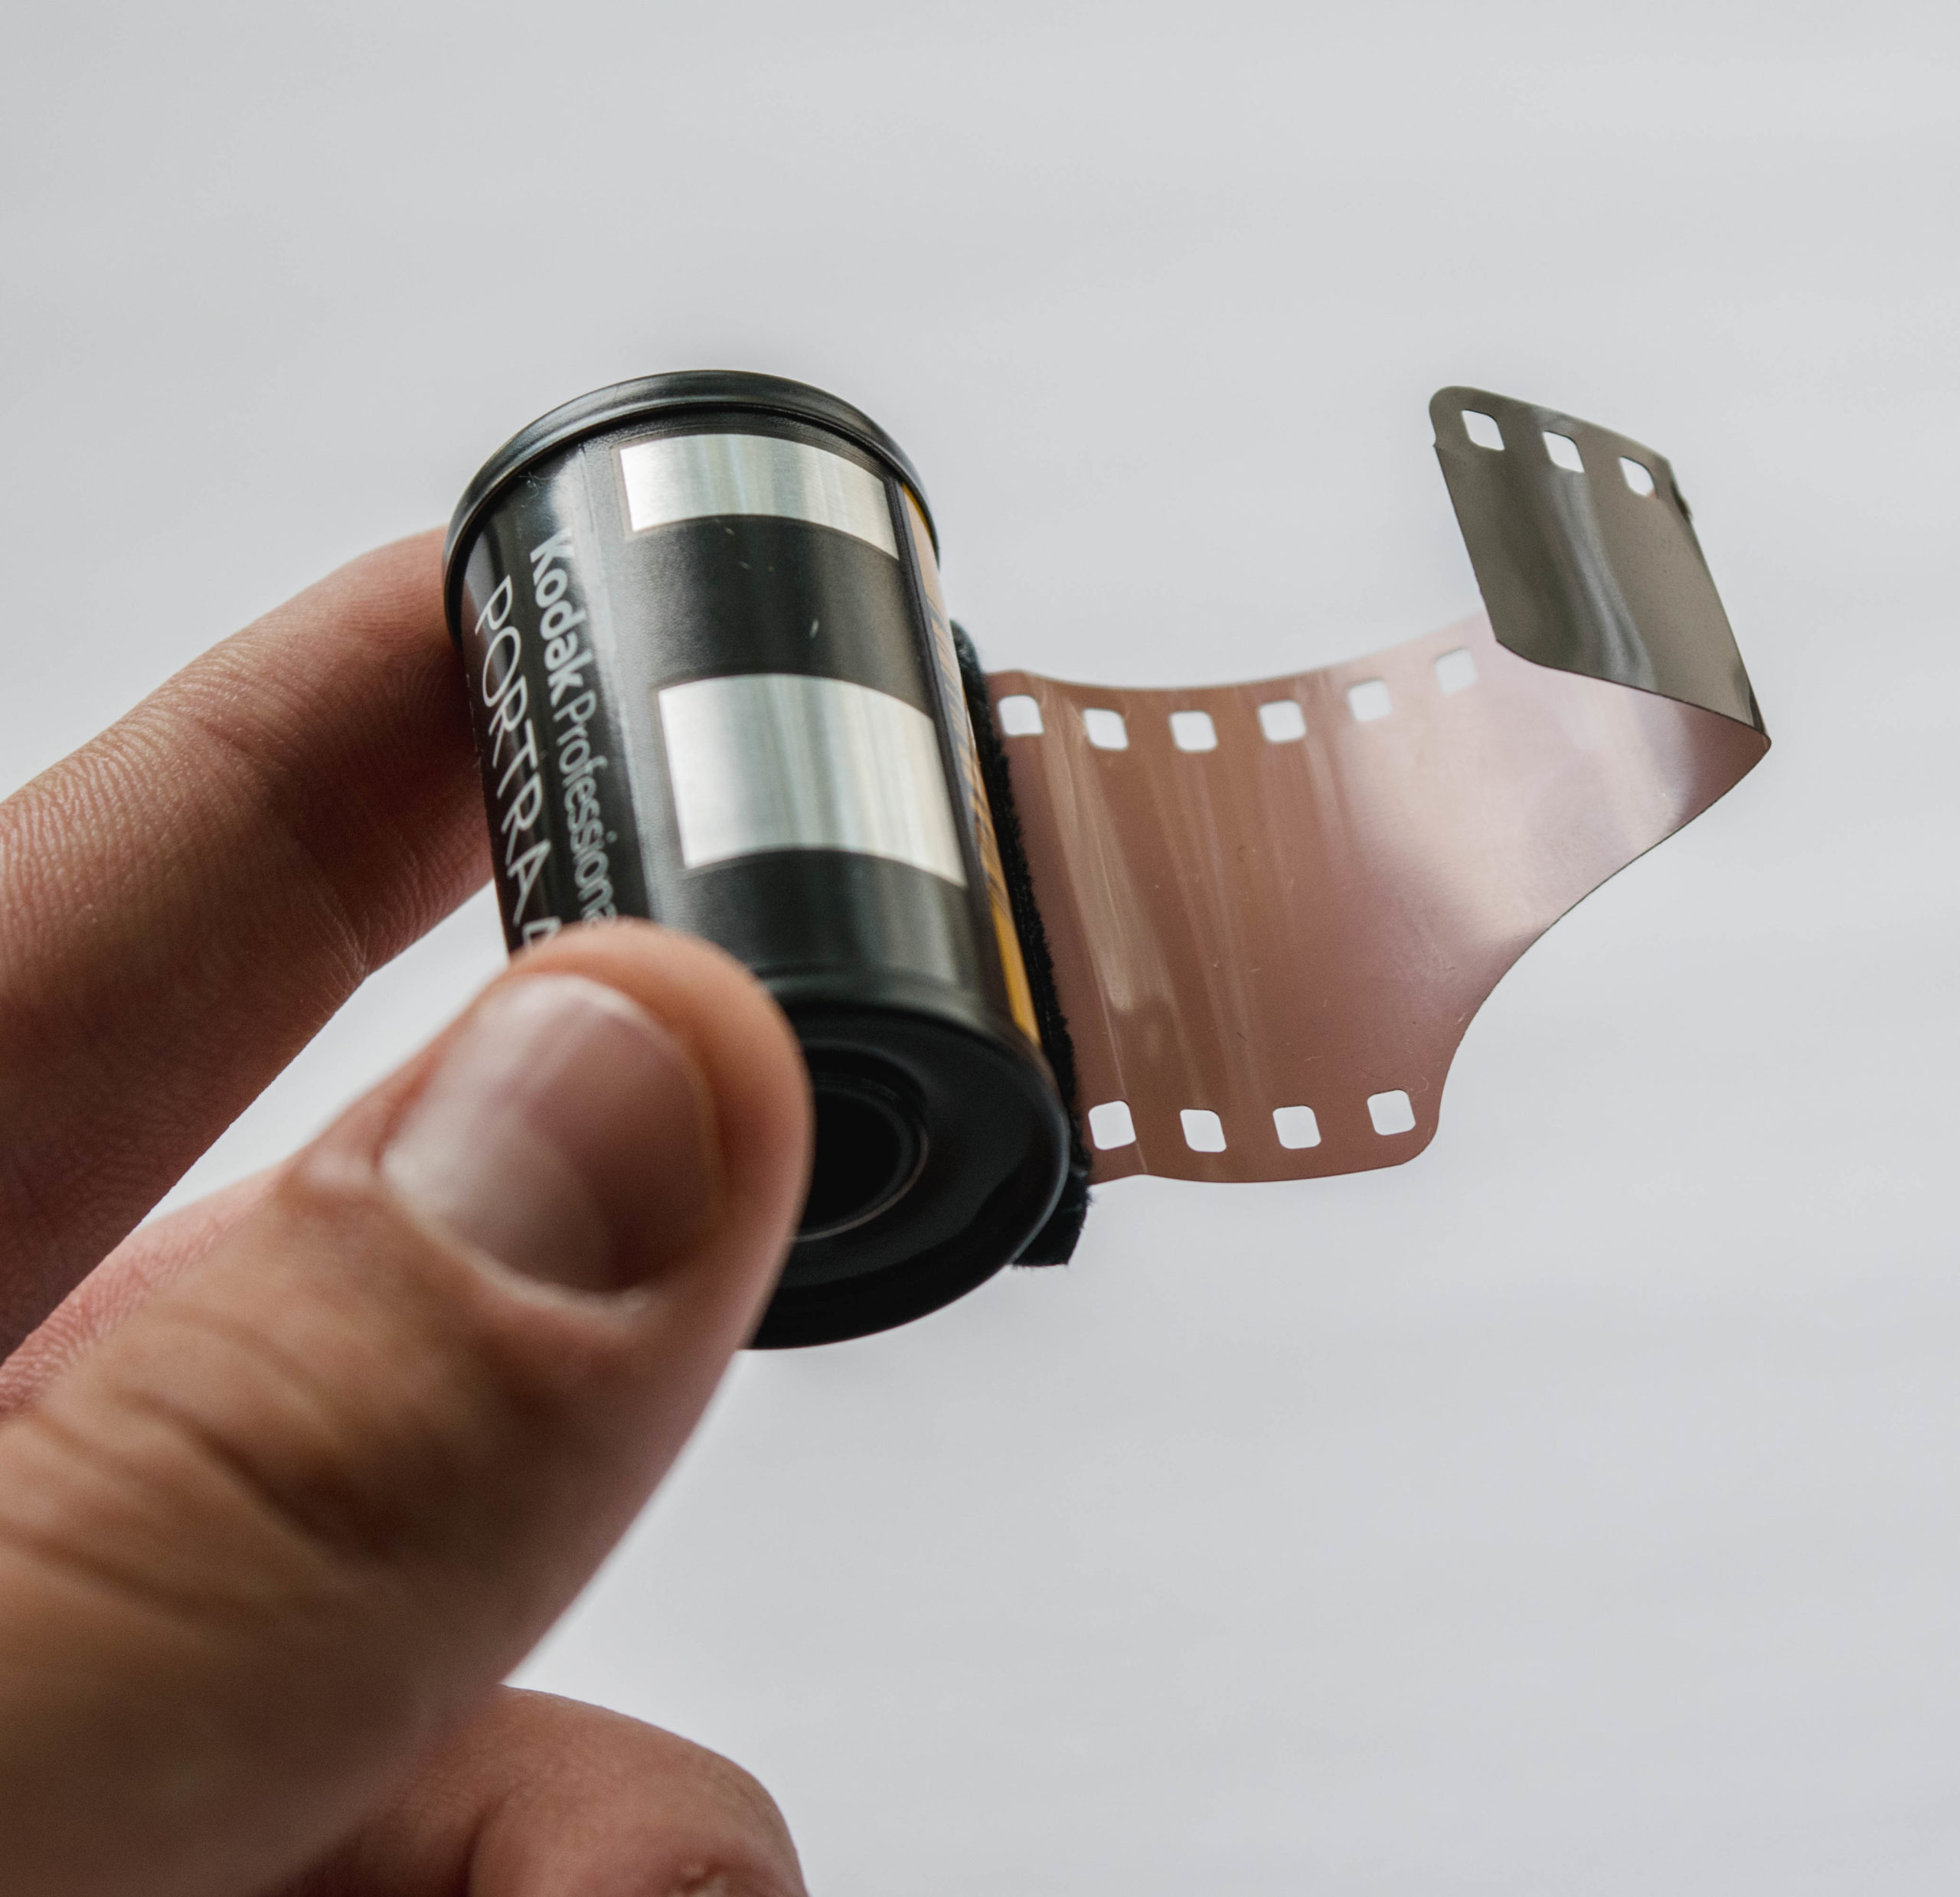 Film Cannister How to Load Film into a 35mm Film Camera - FilterGrade Blog